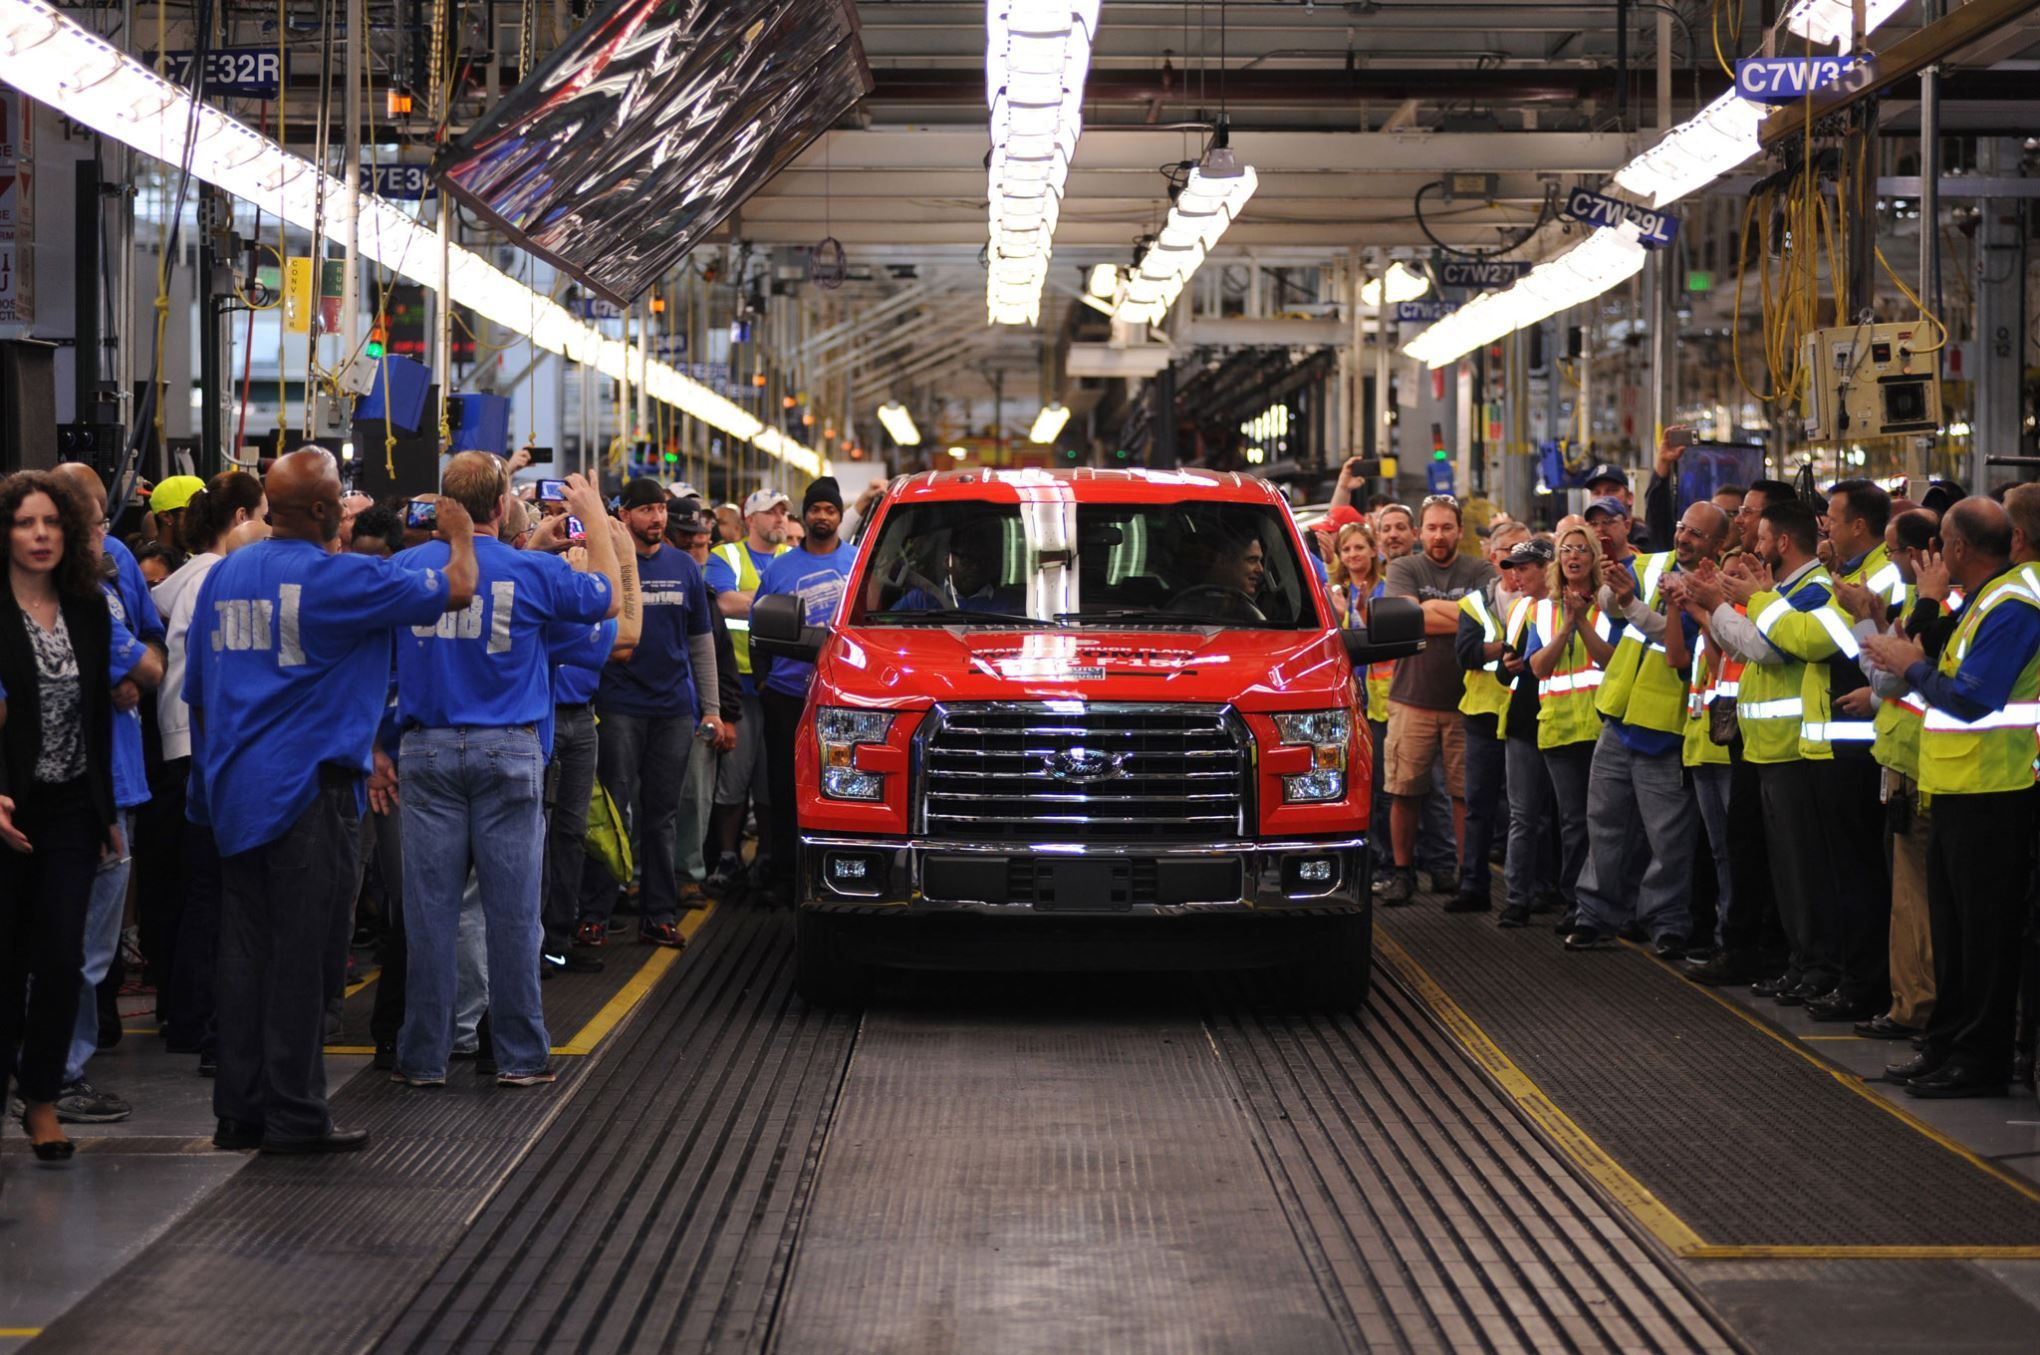 First 2015 ford f150 rolls down assembly line ford f150